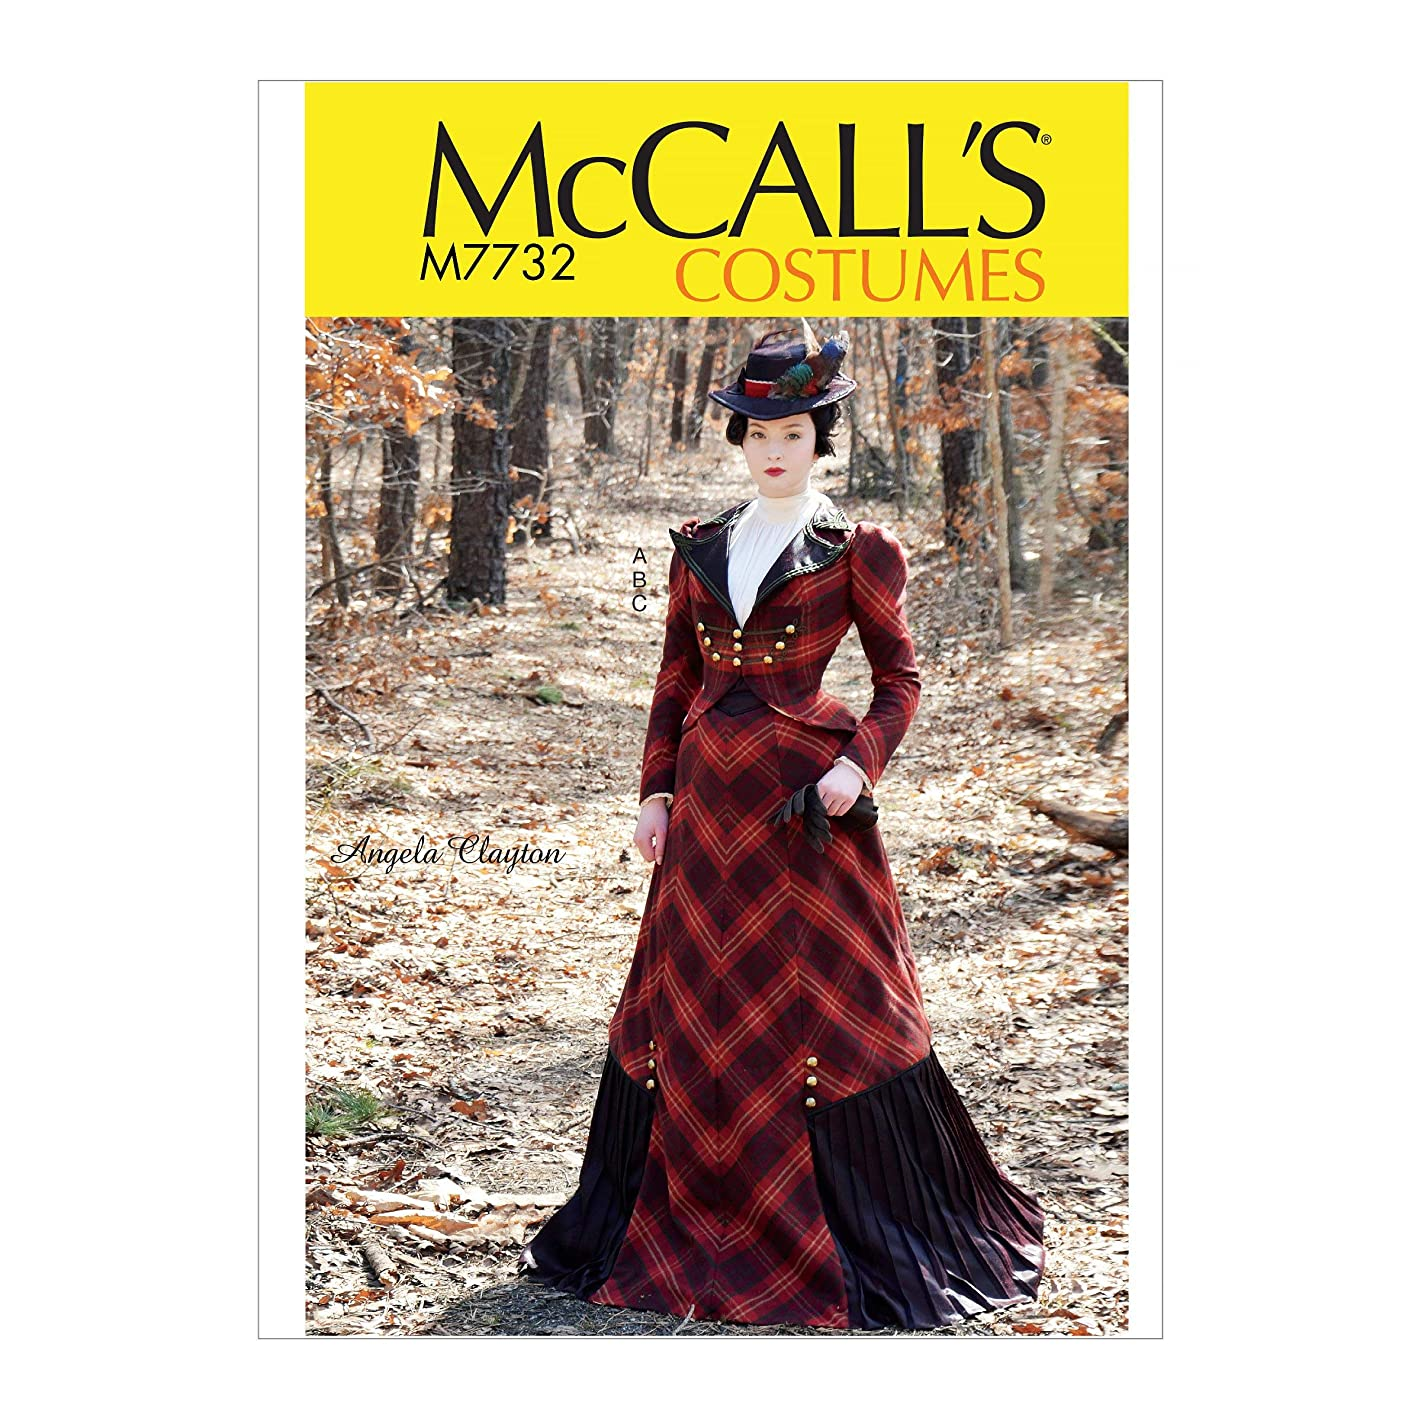 McCall's Patterns M7732AAX Victorian Dress Costume Sewing Pattern for Women by Angela Clayton, Sizes 4-10